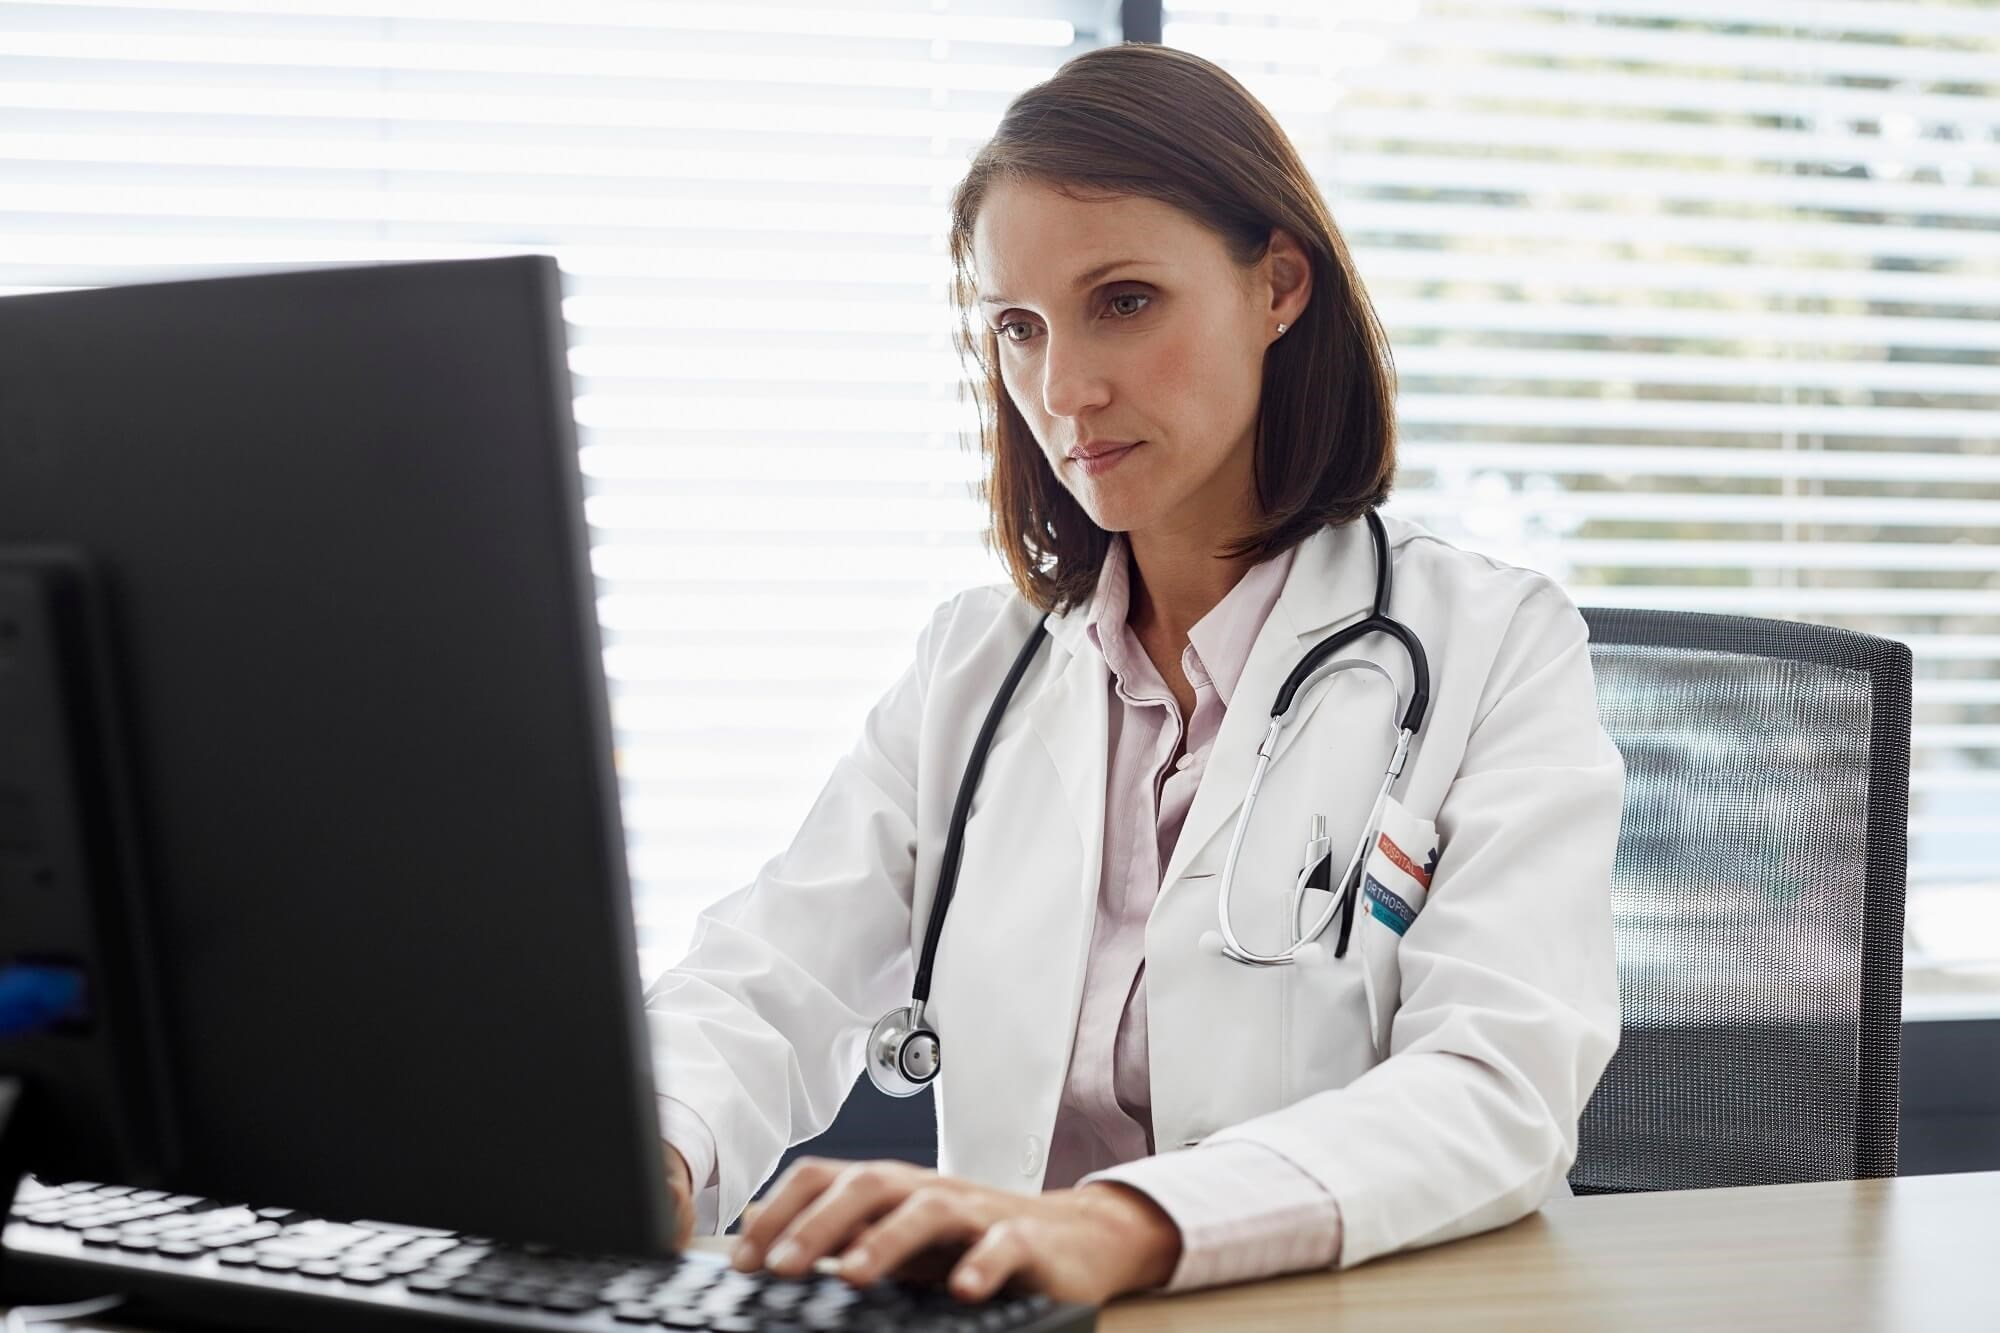 The use of telemedicine for substance use disorder is relatively low in a commercially insured population.